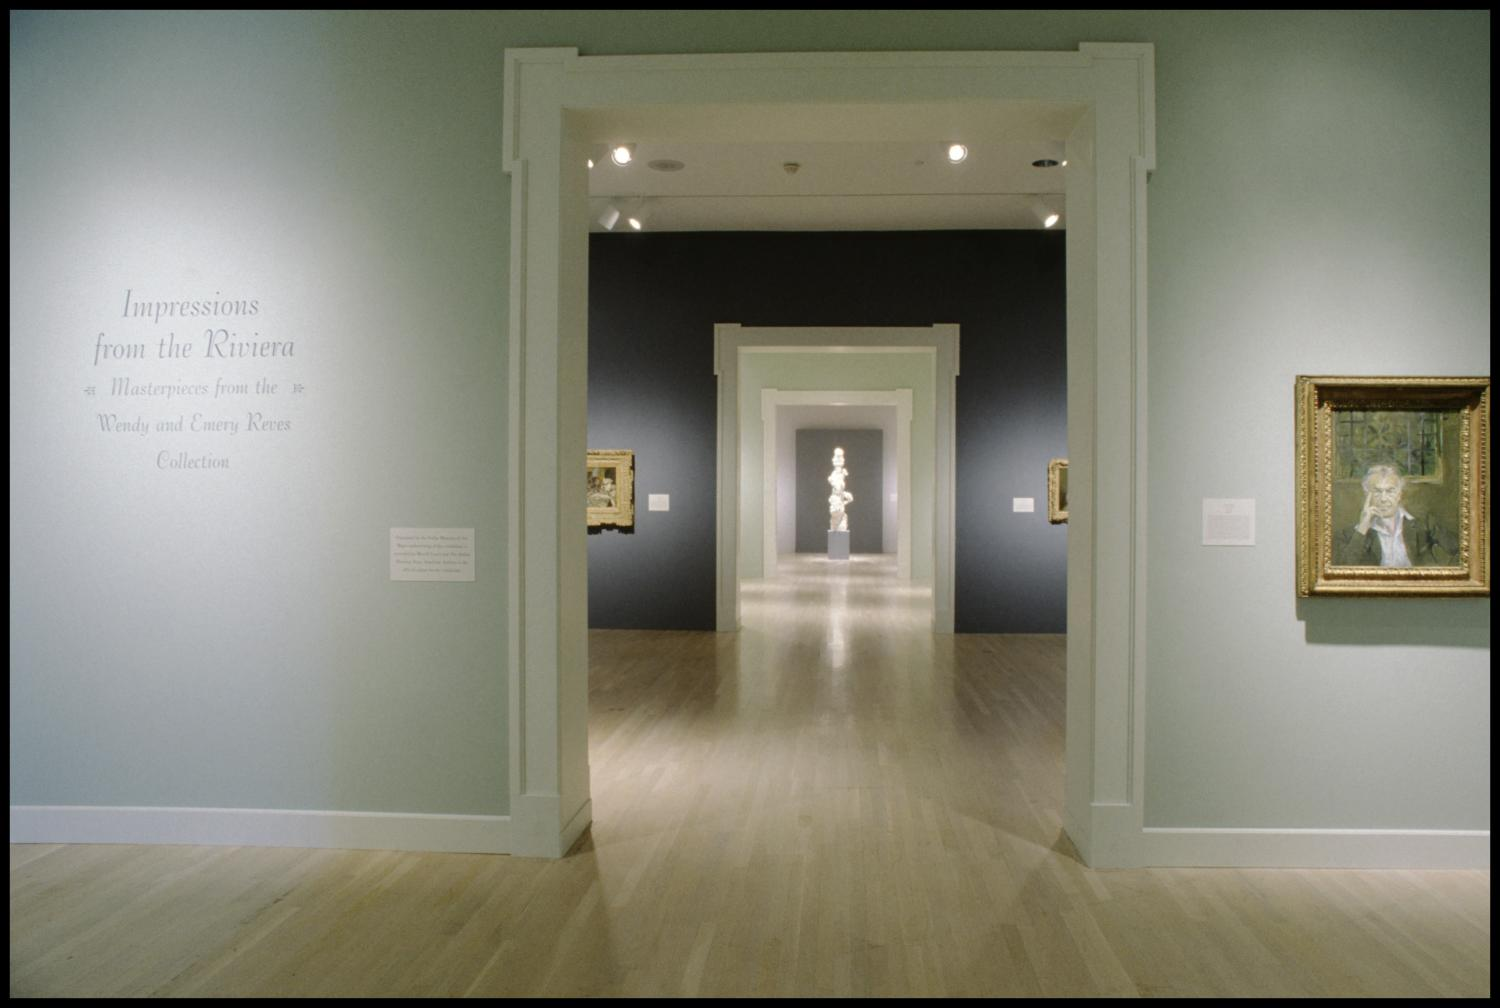 Impressions from the Riviera: Masterpieces from the Wendy and Emery Reves Collection [Exhibition Photographs]                                                                                                      [Sequence #]: 2 of 30